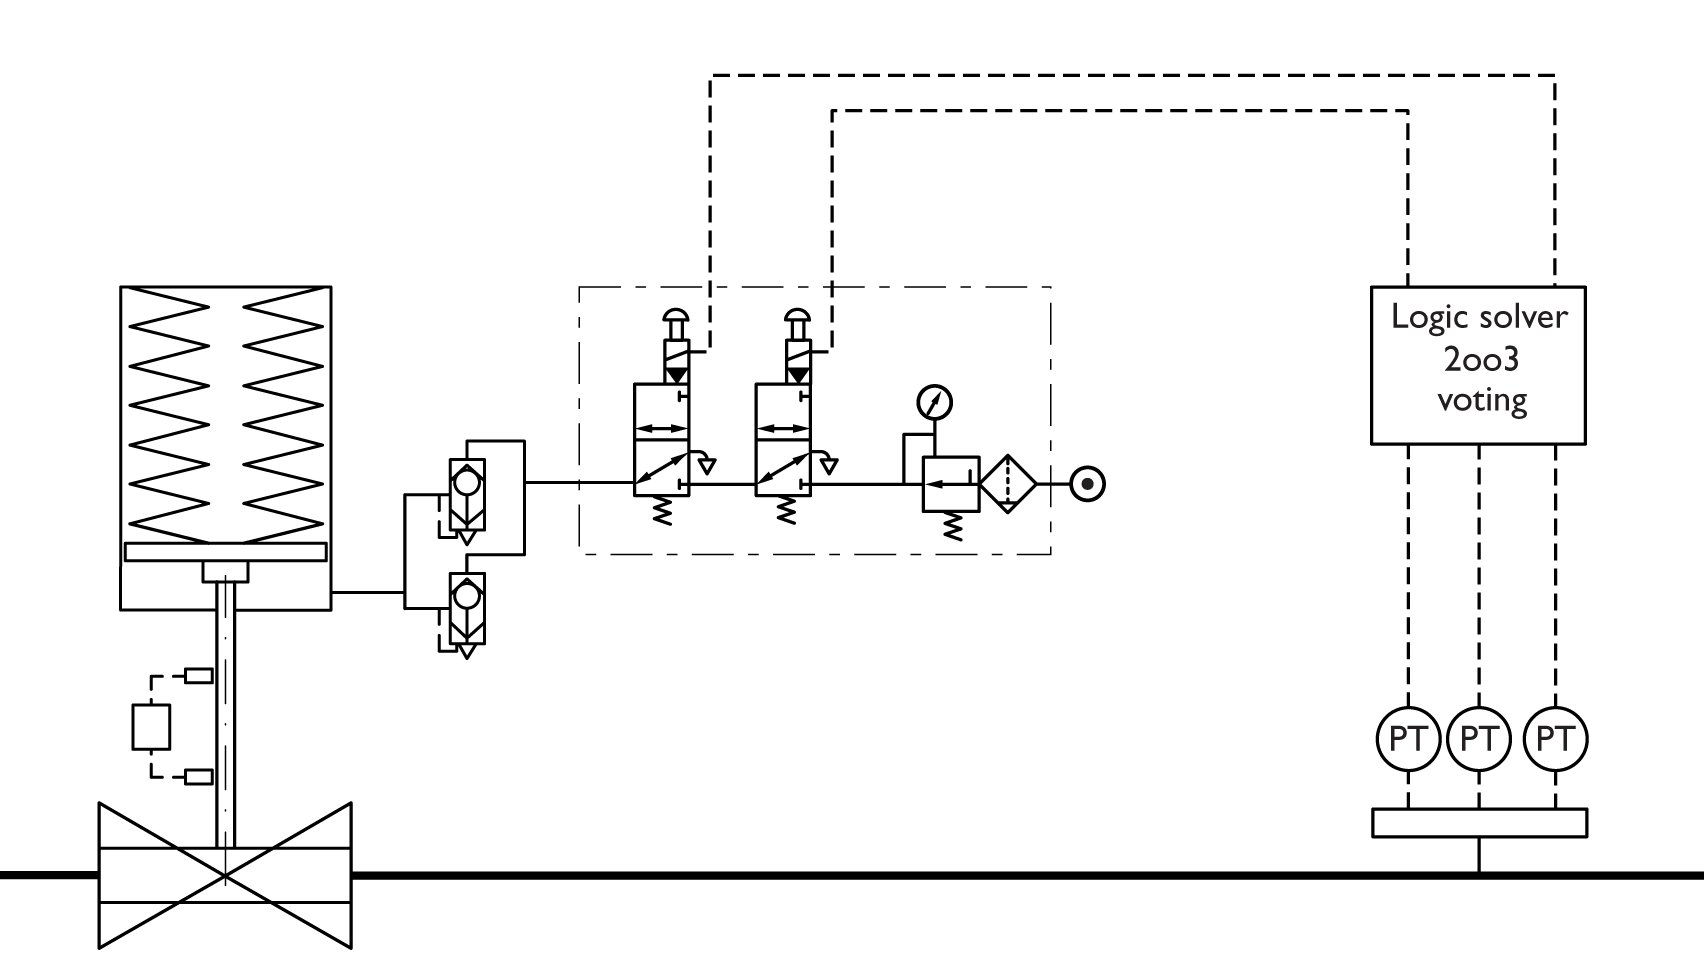 mechanical system block diagram mechanical system object